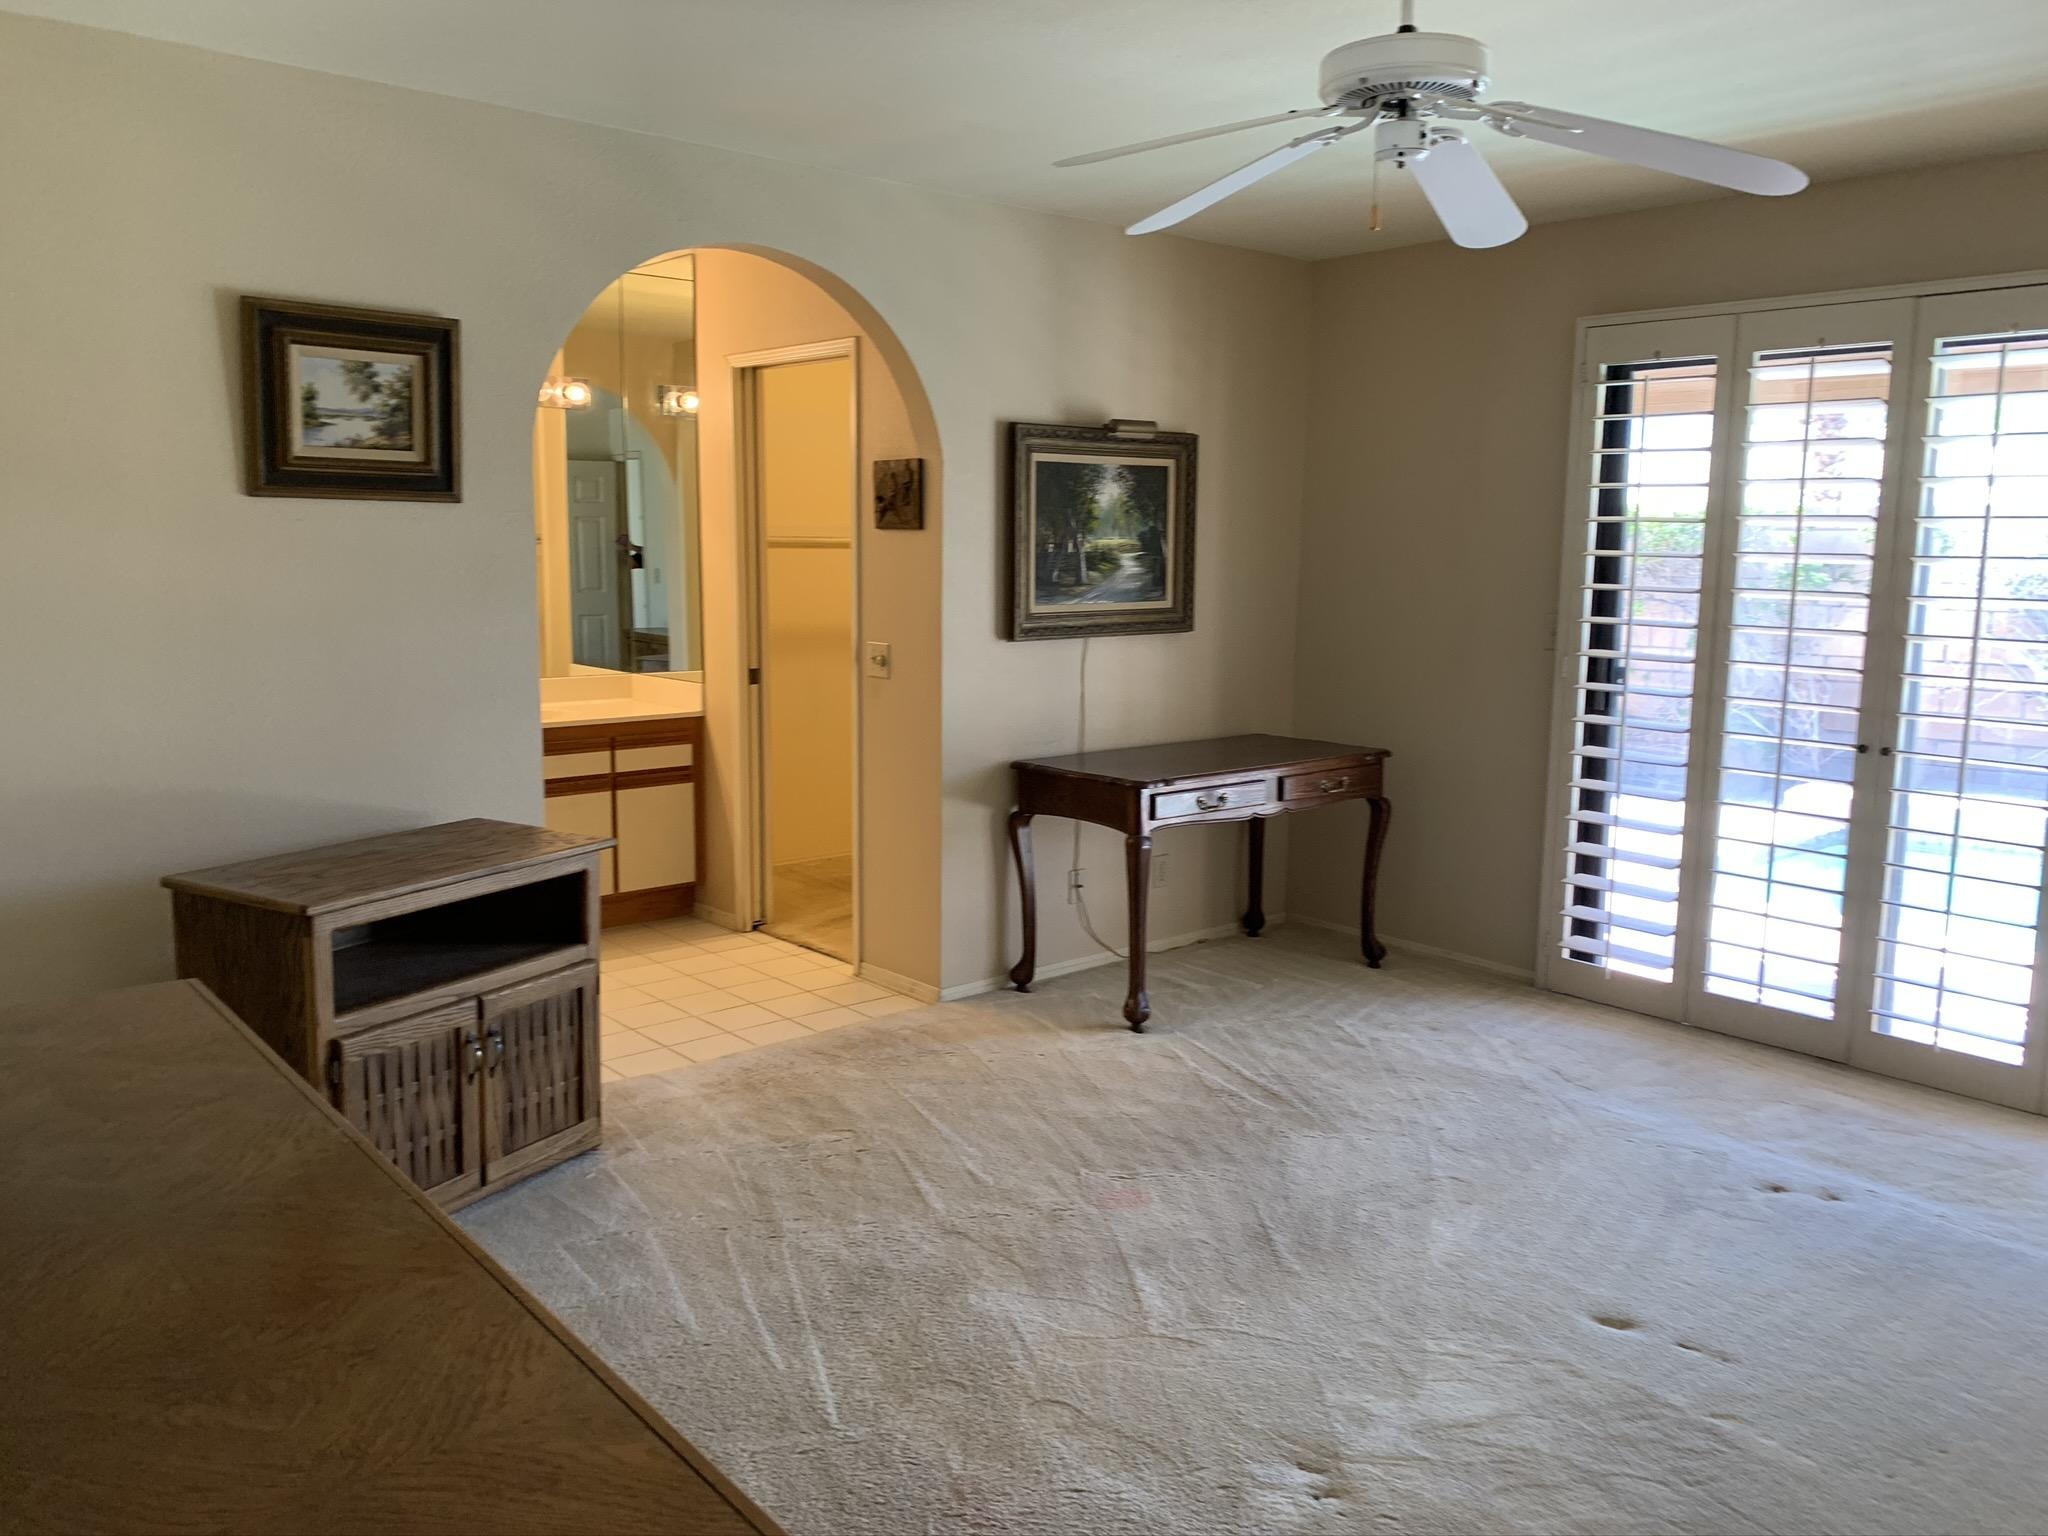 27179 Shadowcrest Lane, Cathedral City, California 92234, 3 Bedrooms Bedrooms, ,2 BathroomsBathrooms,Residential,For Sale,27179 Shadowcrest Lane,219041445